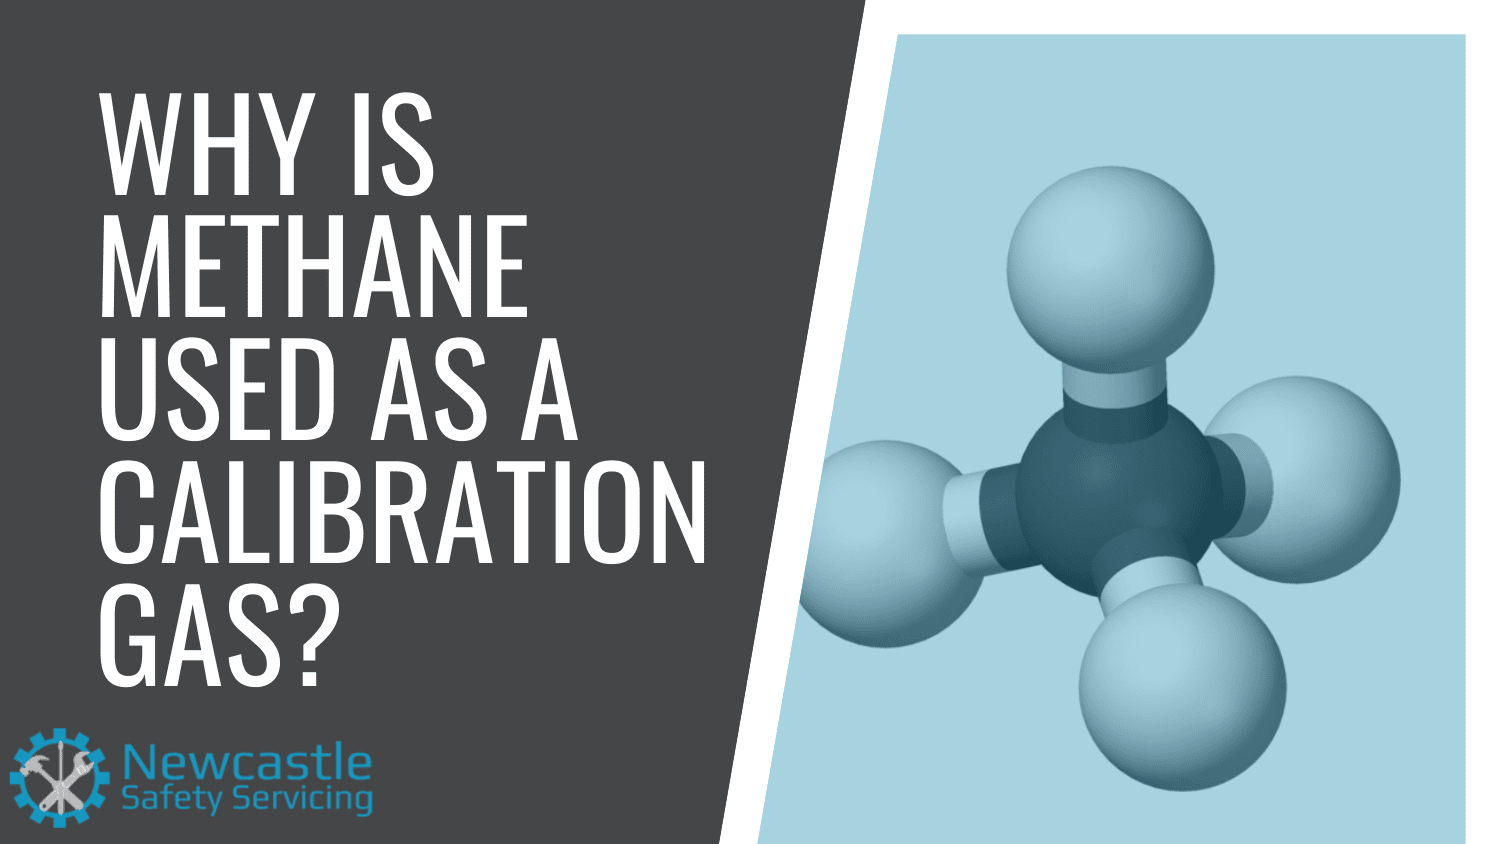 cover image for why is methane used as a calibration gas